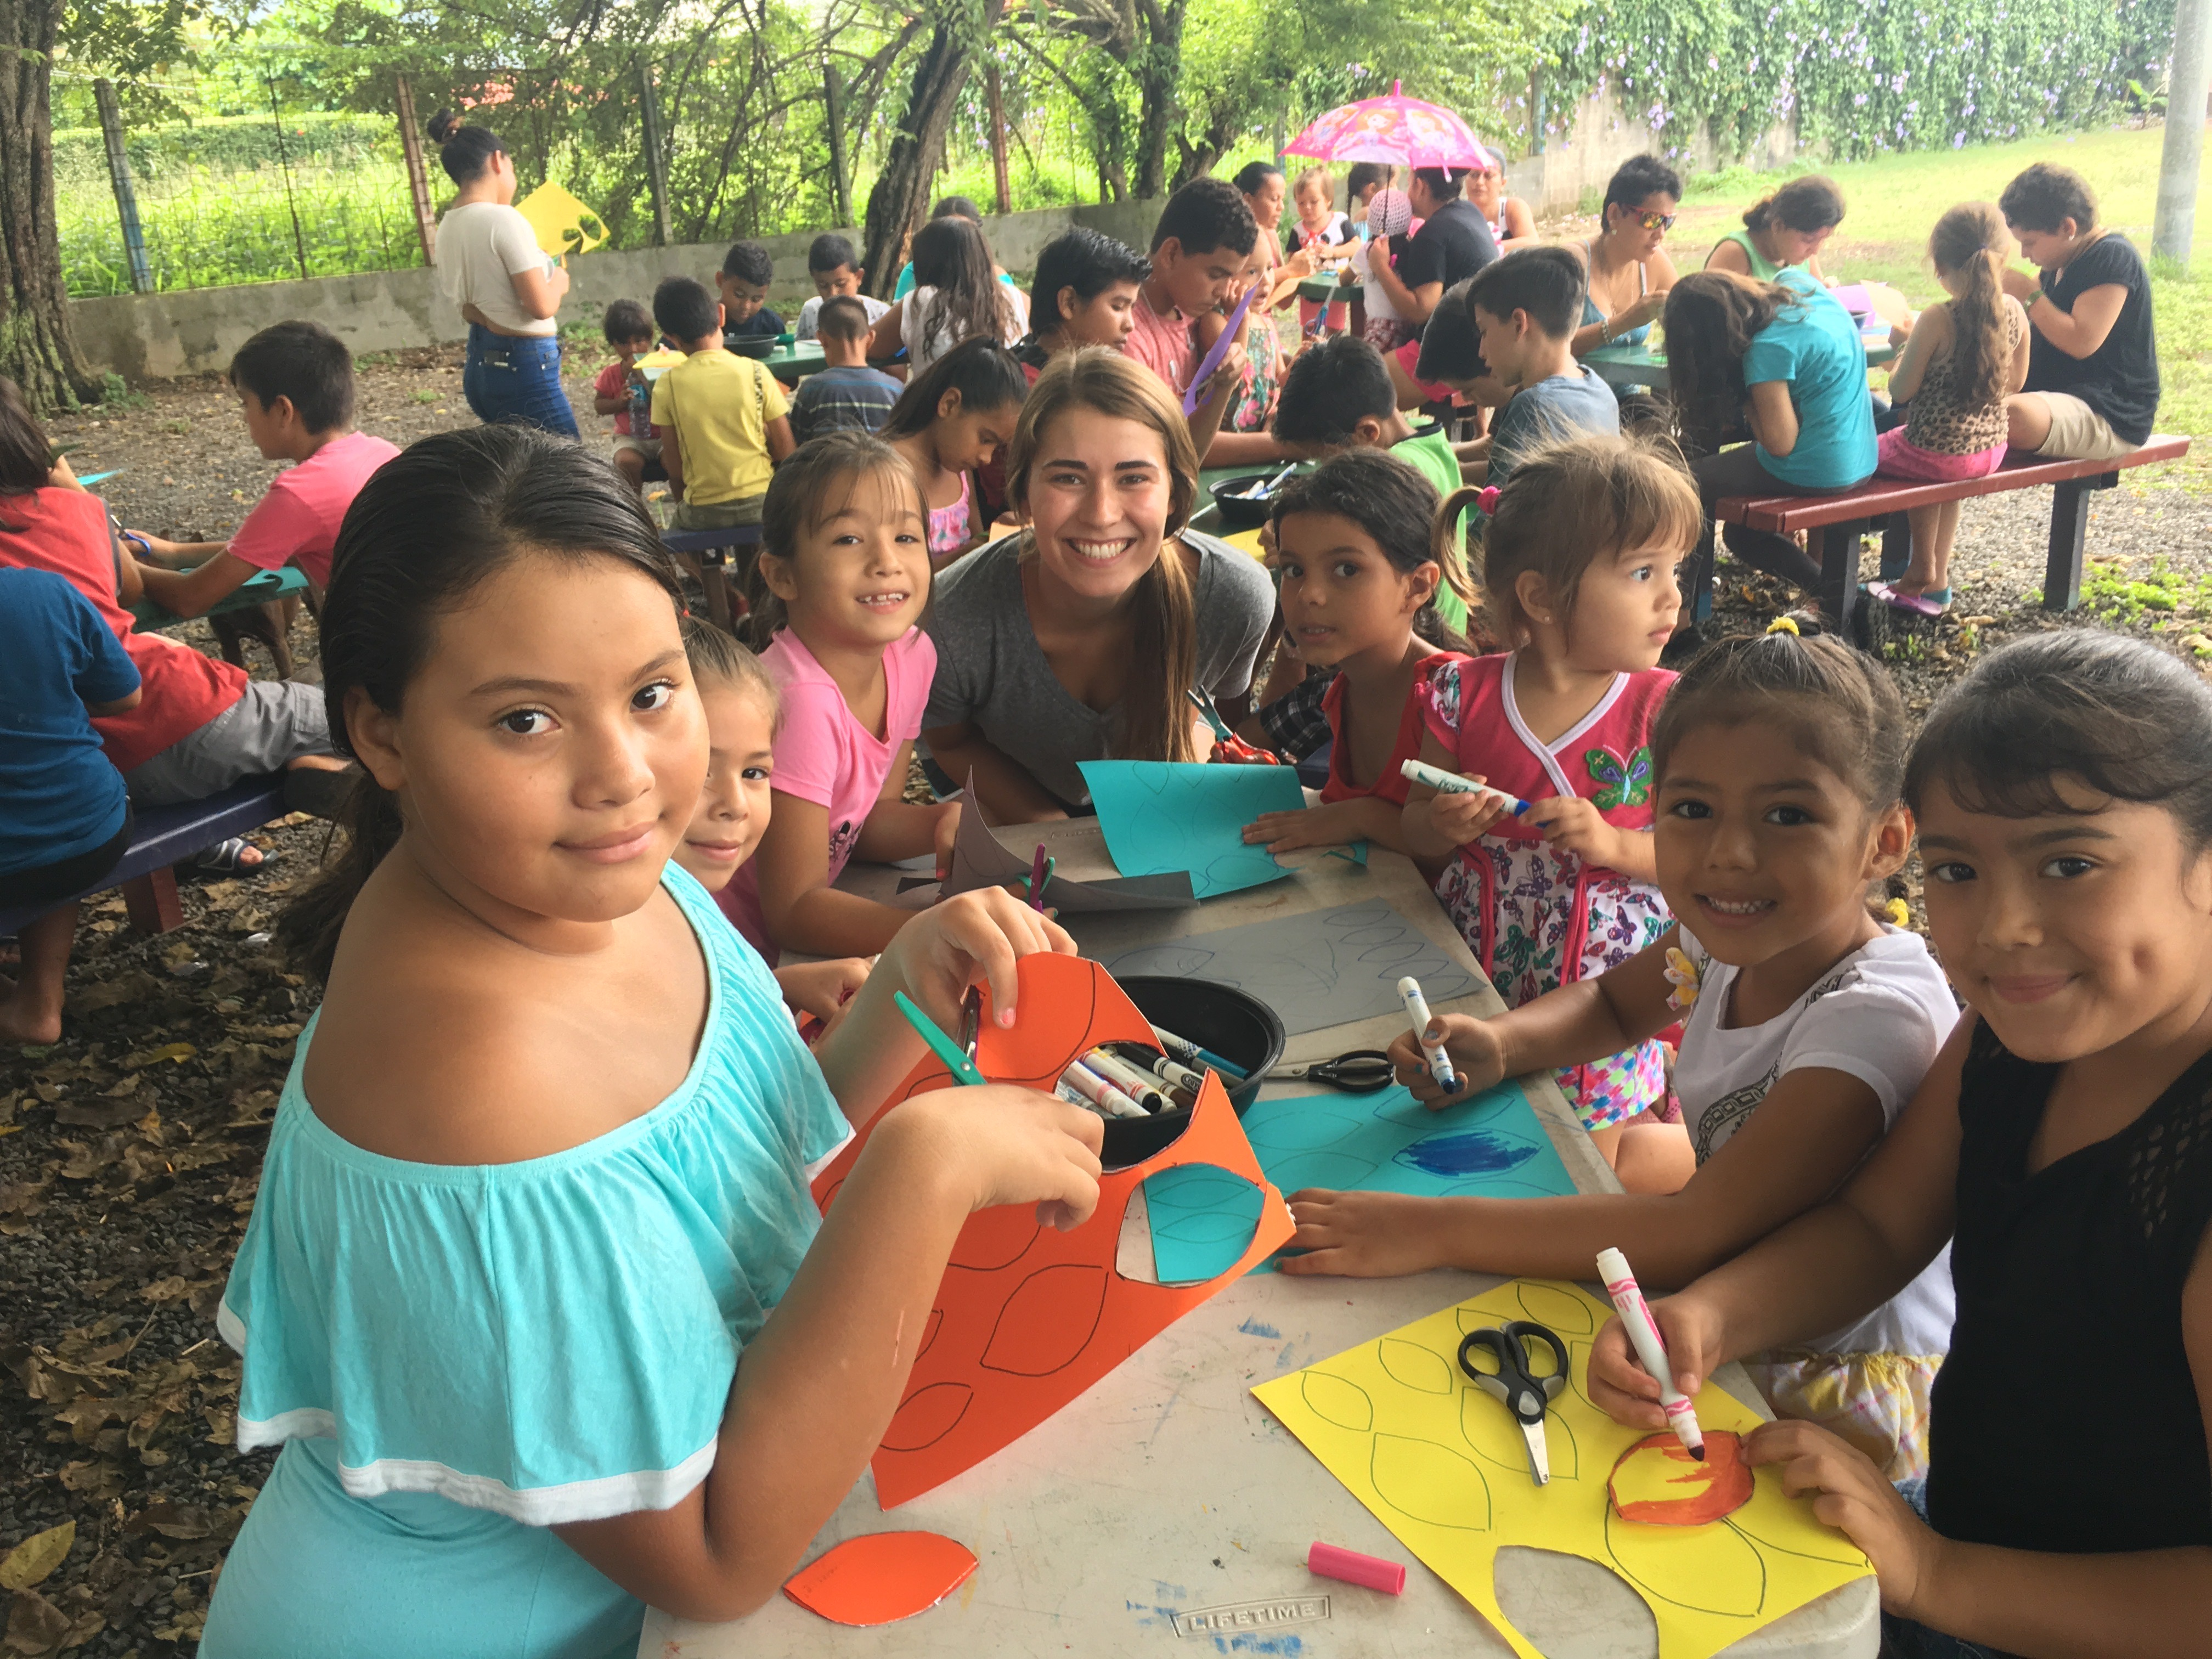 capturing hearts, kids club, jaco beach, costa rica, christian internships, christian lifestyle, mission team, ministry, internships, international living